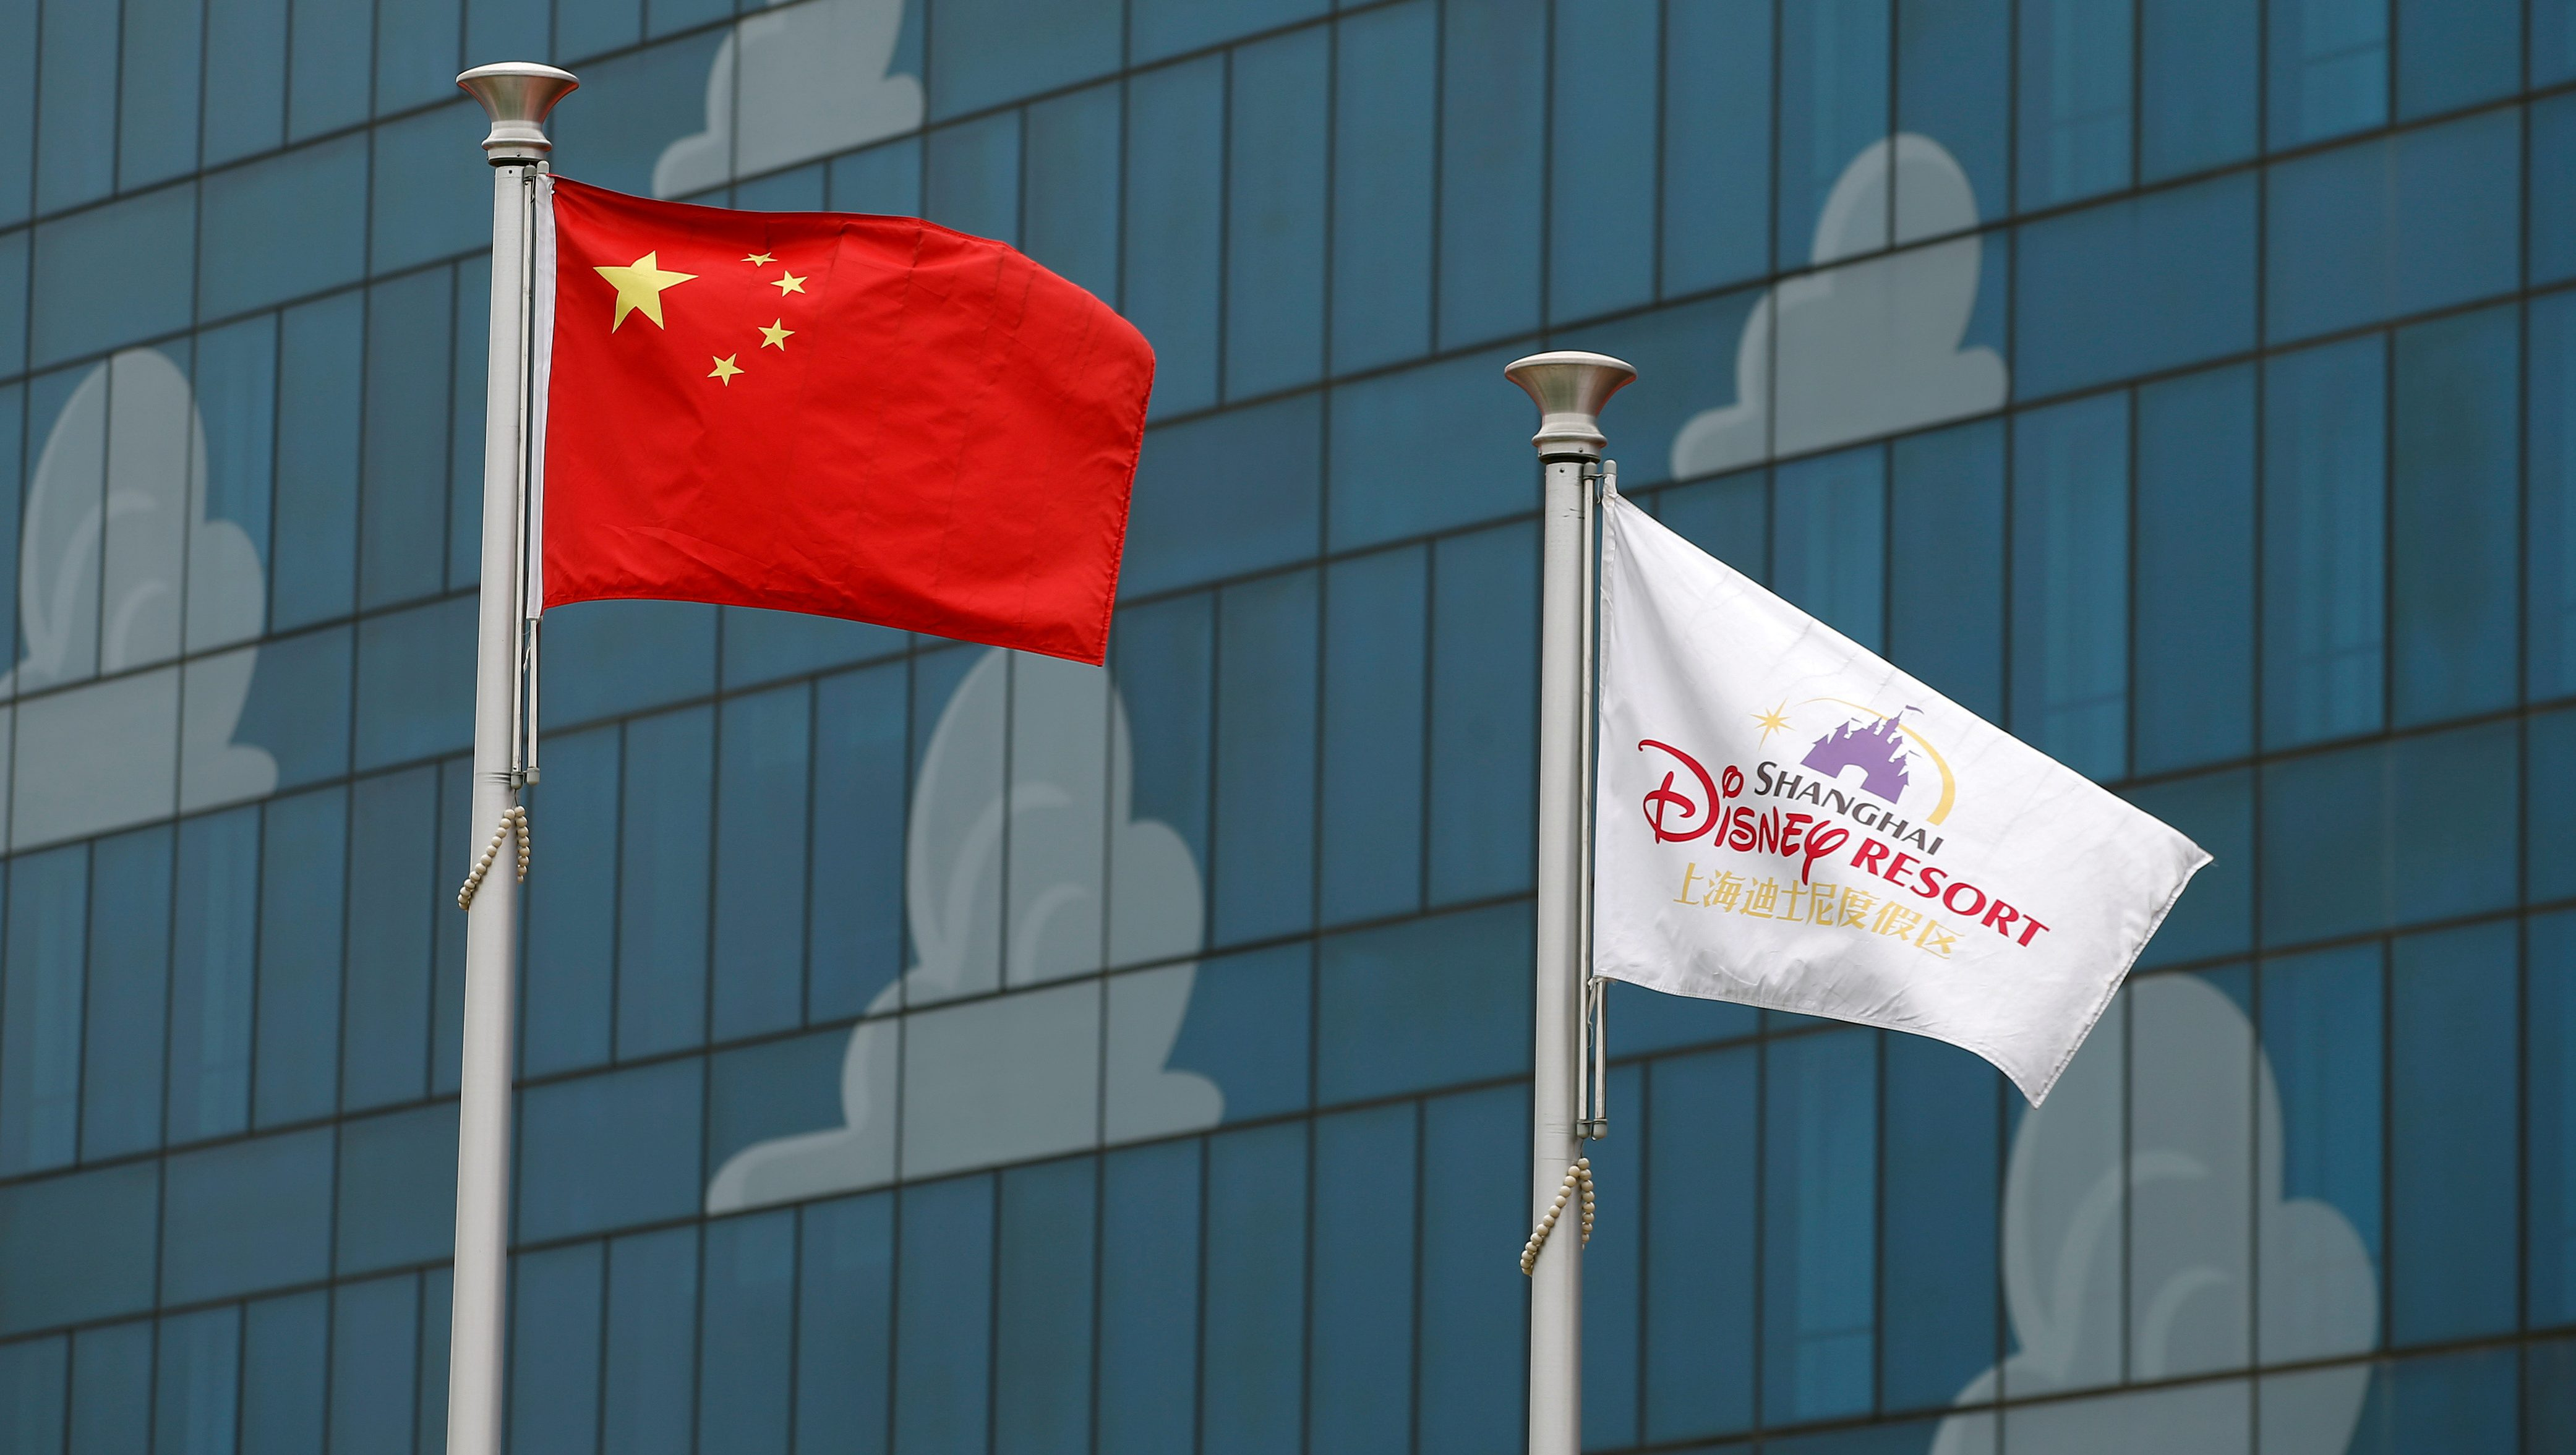 Chinese (L) and Disney flags are seen at Shanghai Disney Resort during a part of the three-day Grand Opening events in Shanghai, China, June 15, 2016.